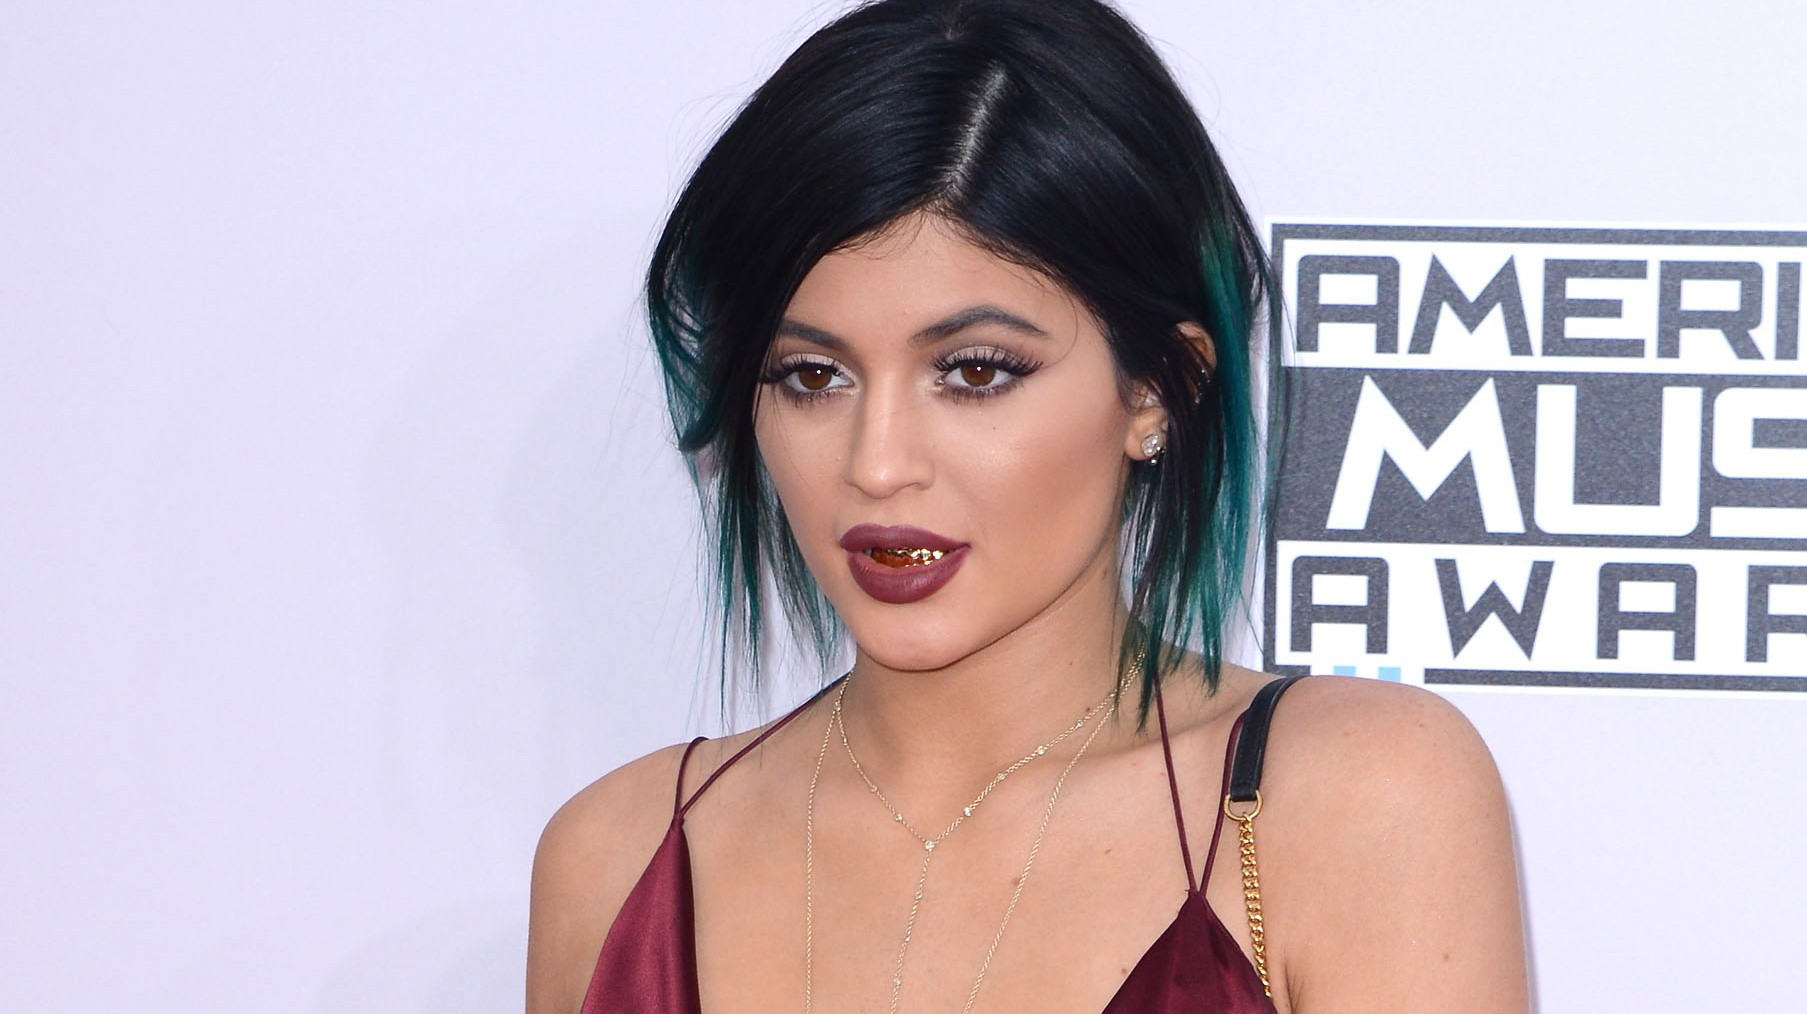 jenners single men Kendall and kris jenner as well as kim kardashian make appearances in this season, which will premiere in march while khloe kardashian is not in the promo,.